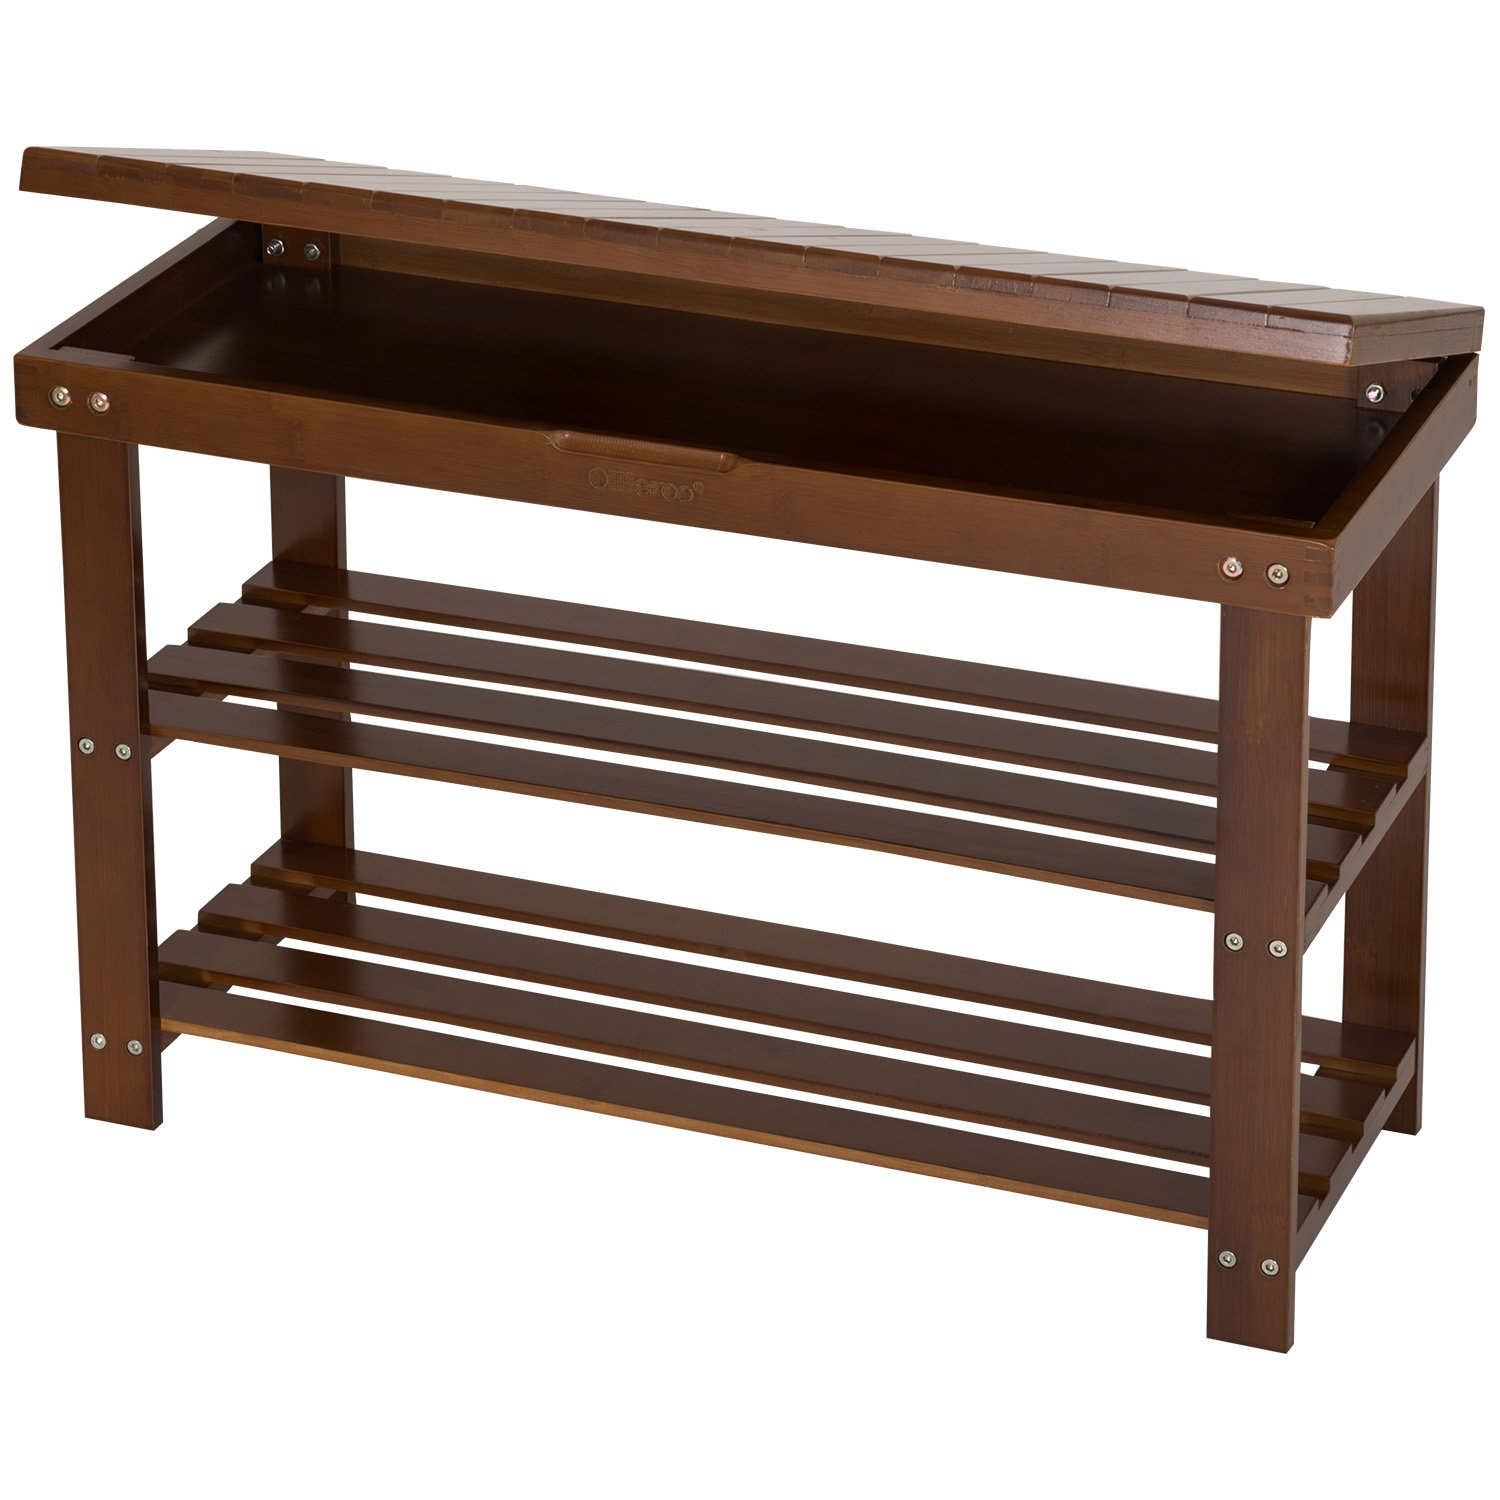 Ollieroo Shoe Rack 2 Tier Natural Bamboo Shoe Bench Organizer, Foot Stool with Storage Drawer on Top (Amber)